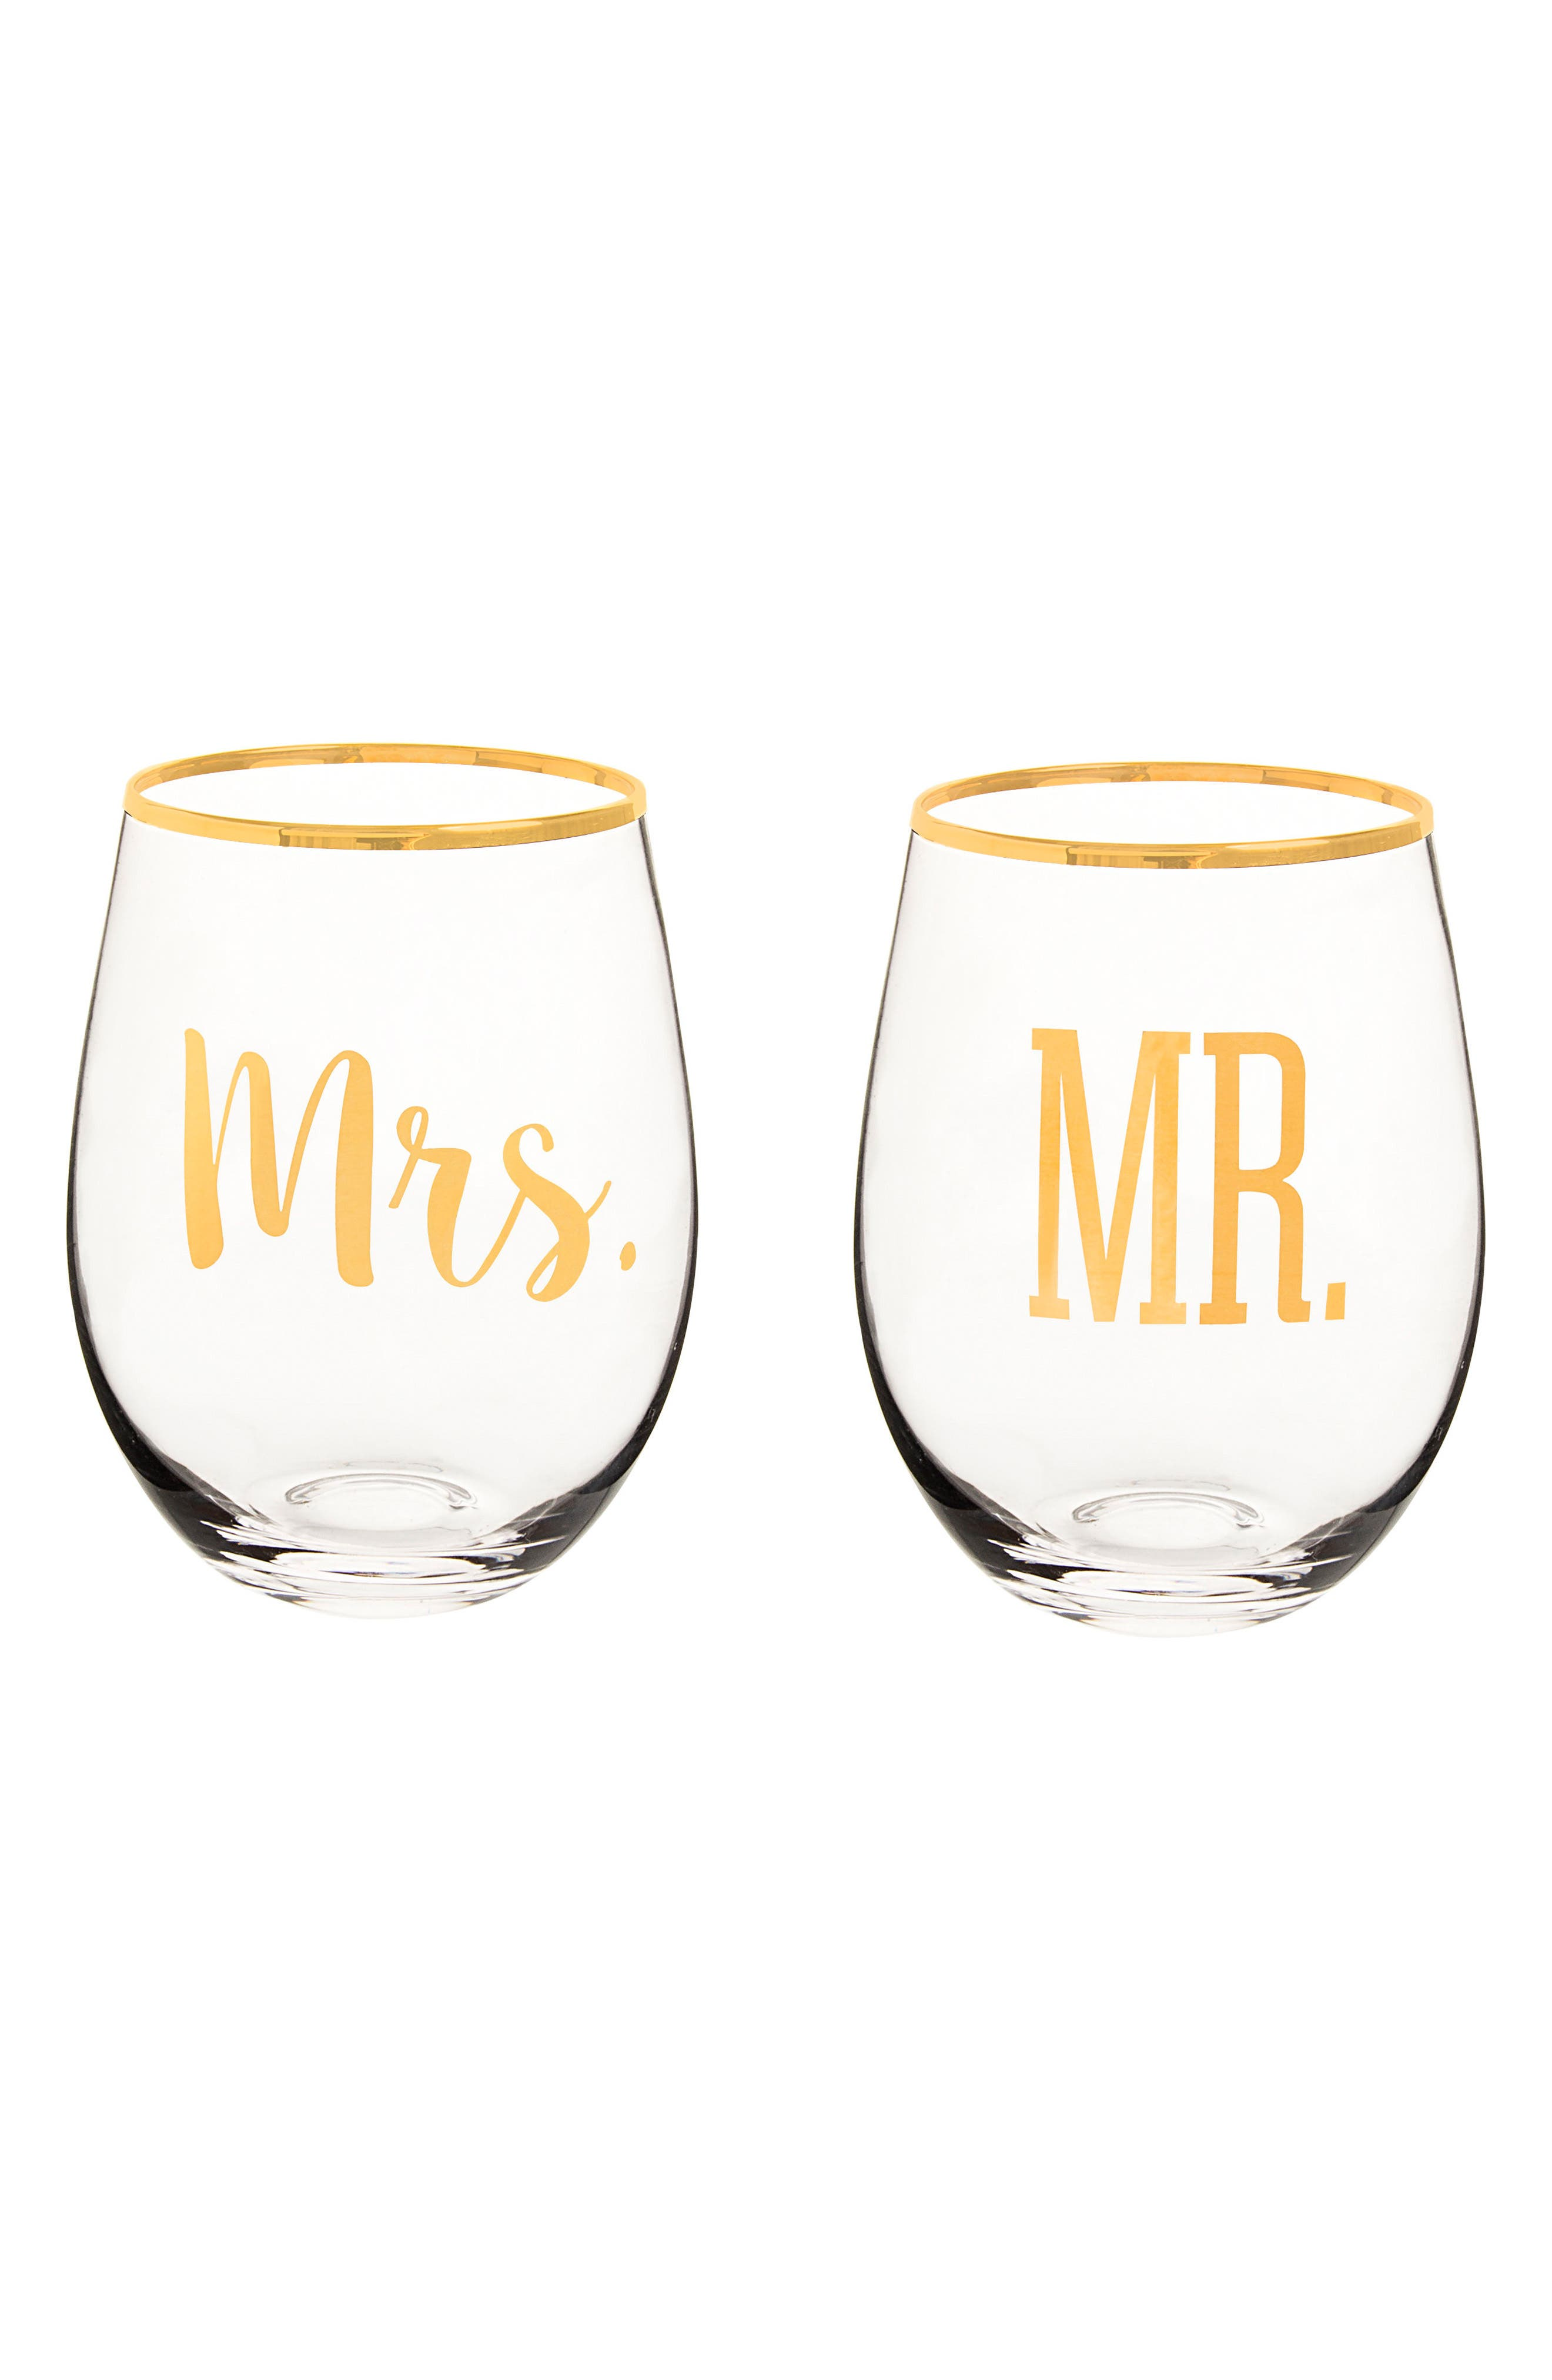 Main Image - Cathy's Concepts Mr. & Mrs. Set of 2 Stemless Wine Glasses